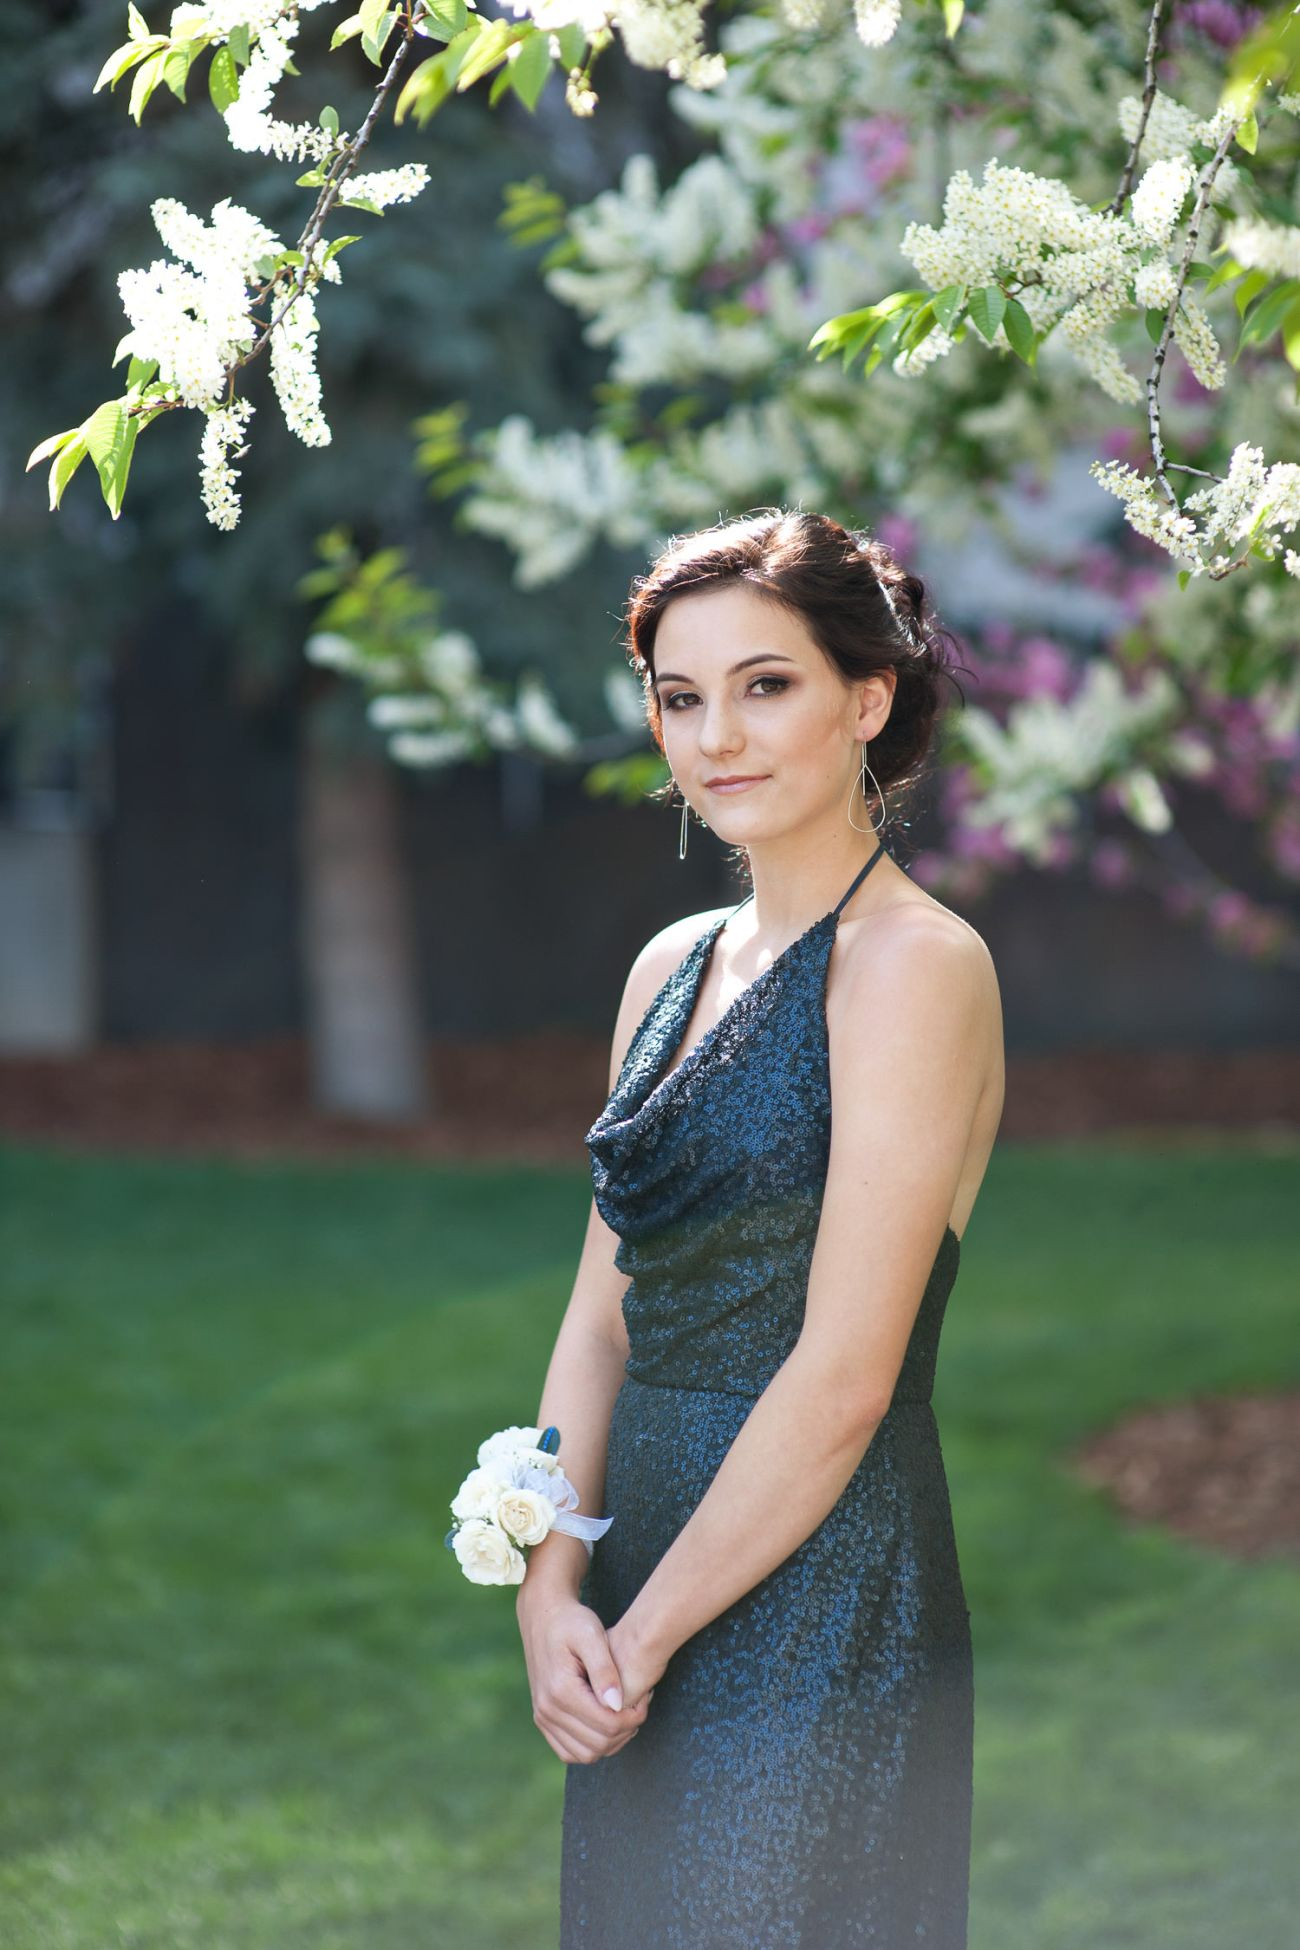 graduate poses with a blossoming tree captured by Tara Whittaker Photography